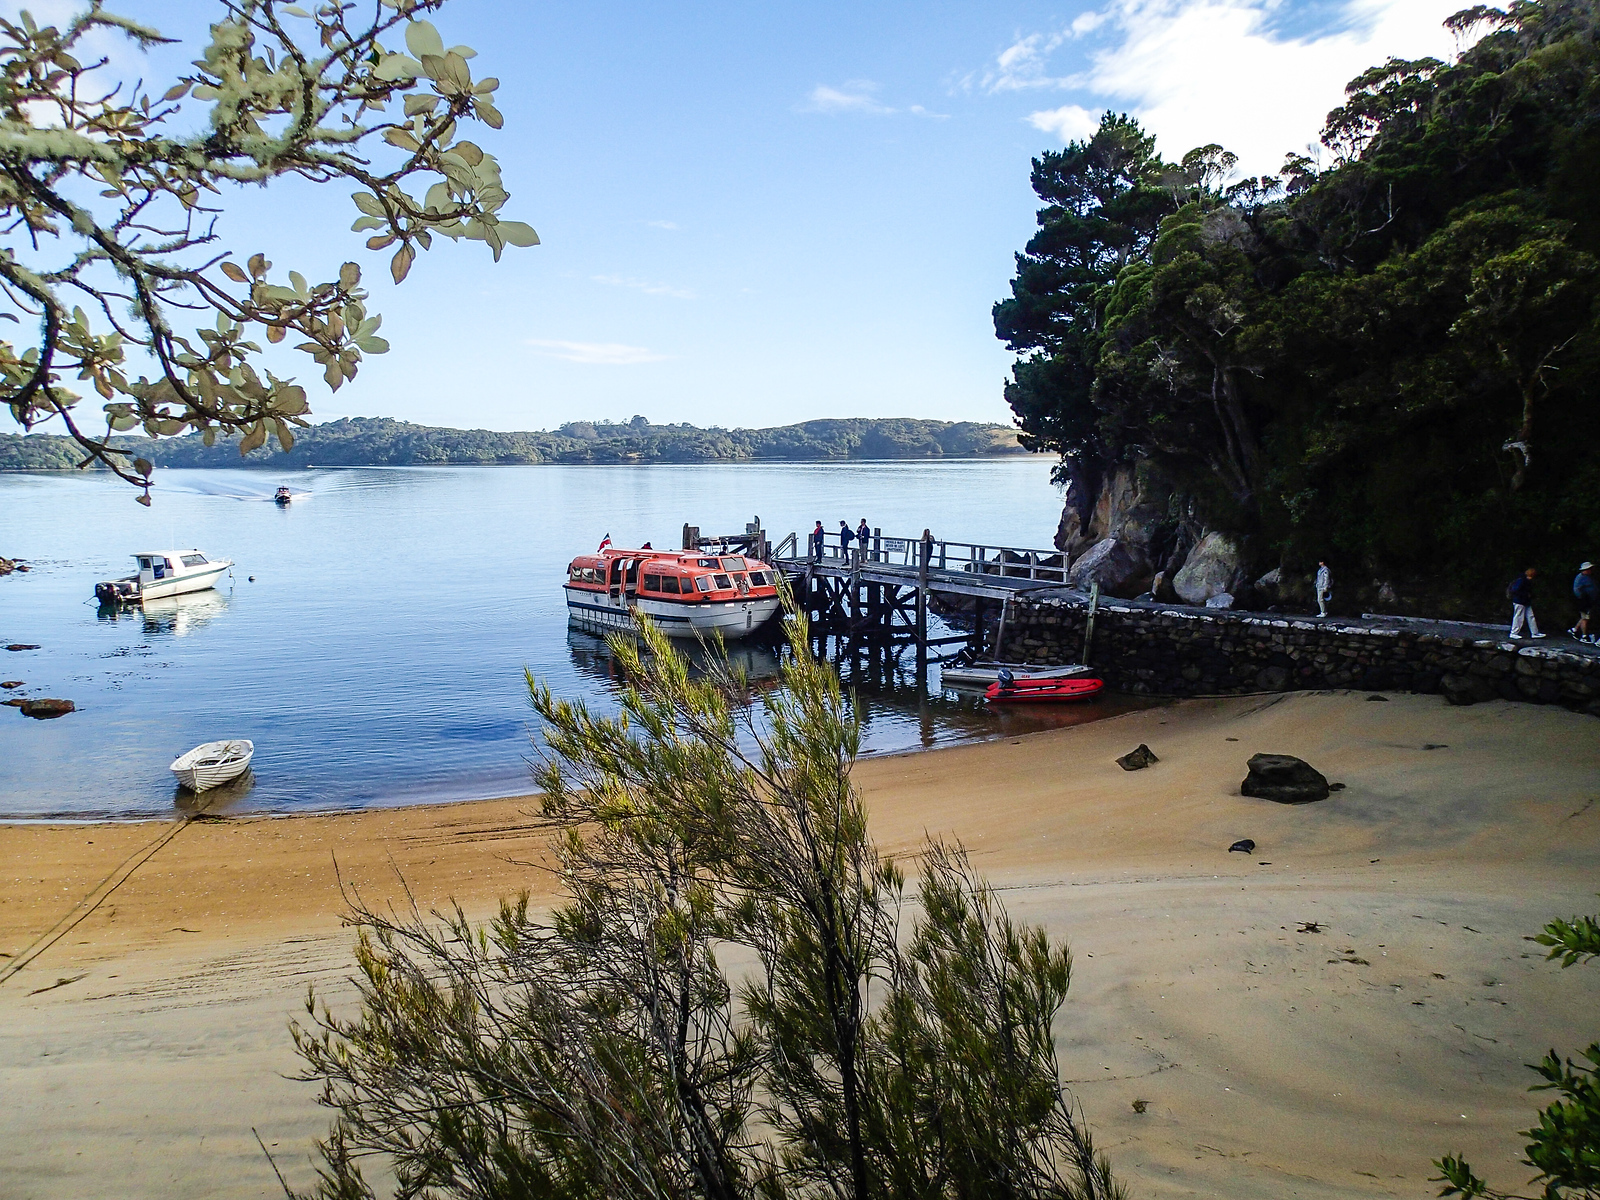 Cruise tender pulled up at the dock on Ulva Island, New Zealand.